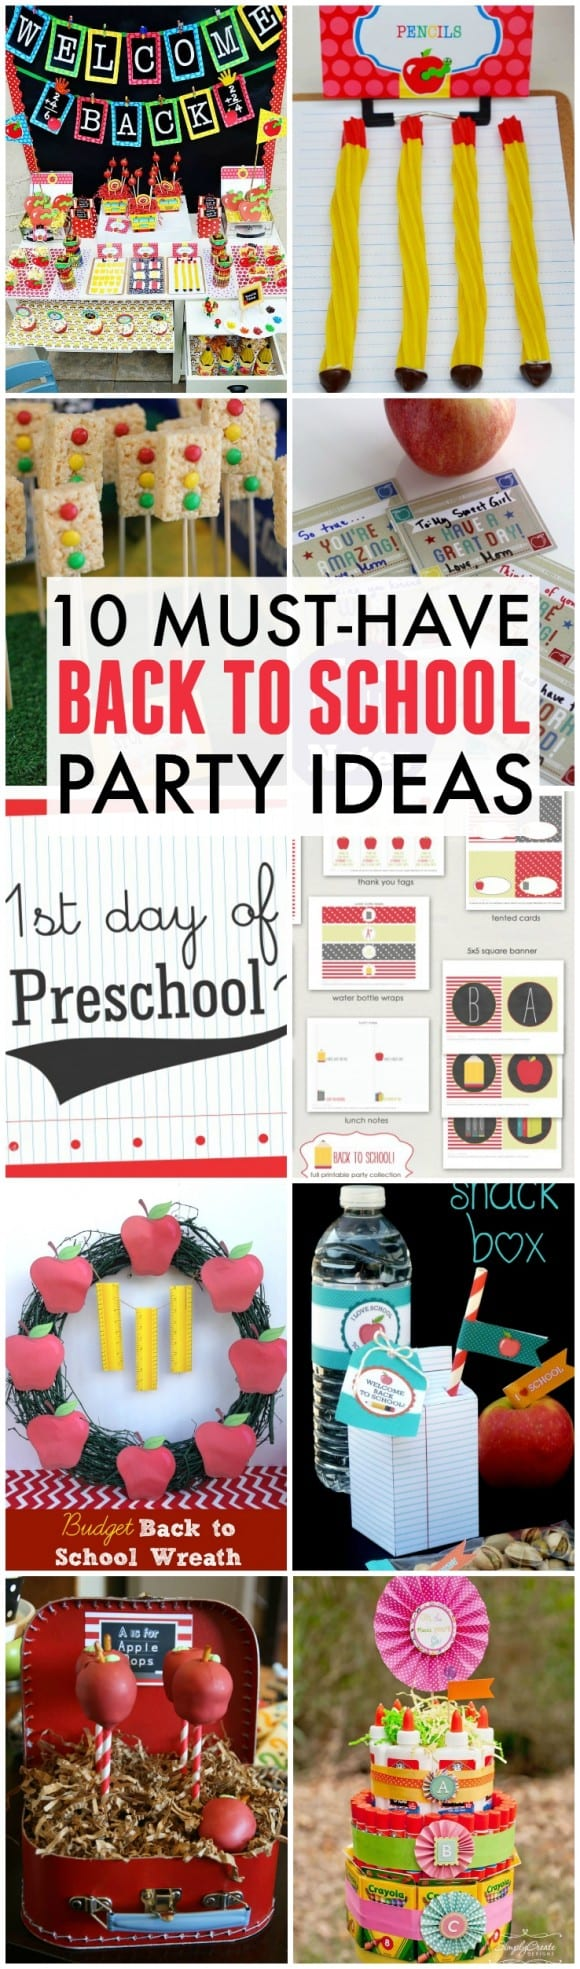 Back to School Party Ideas | CatchMyParty.com